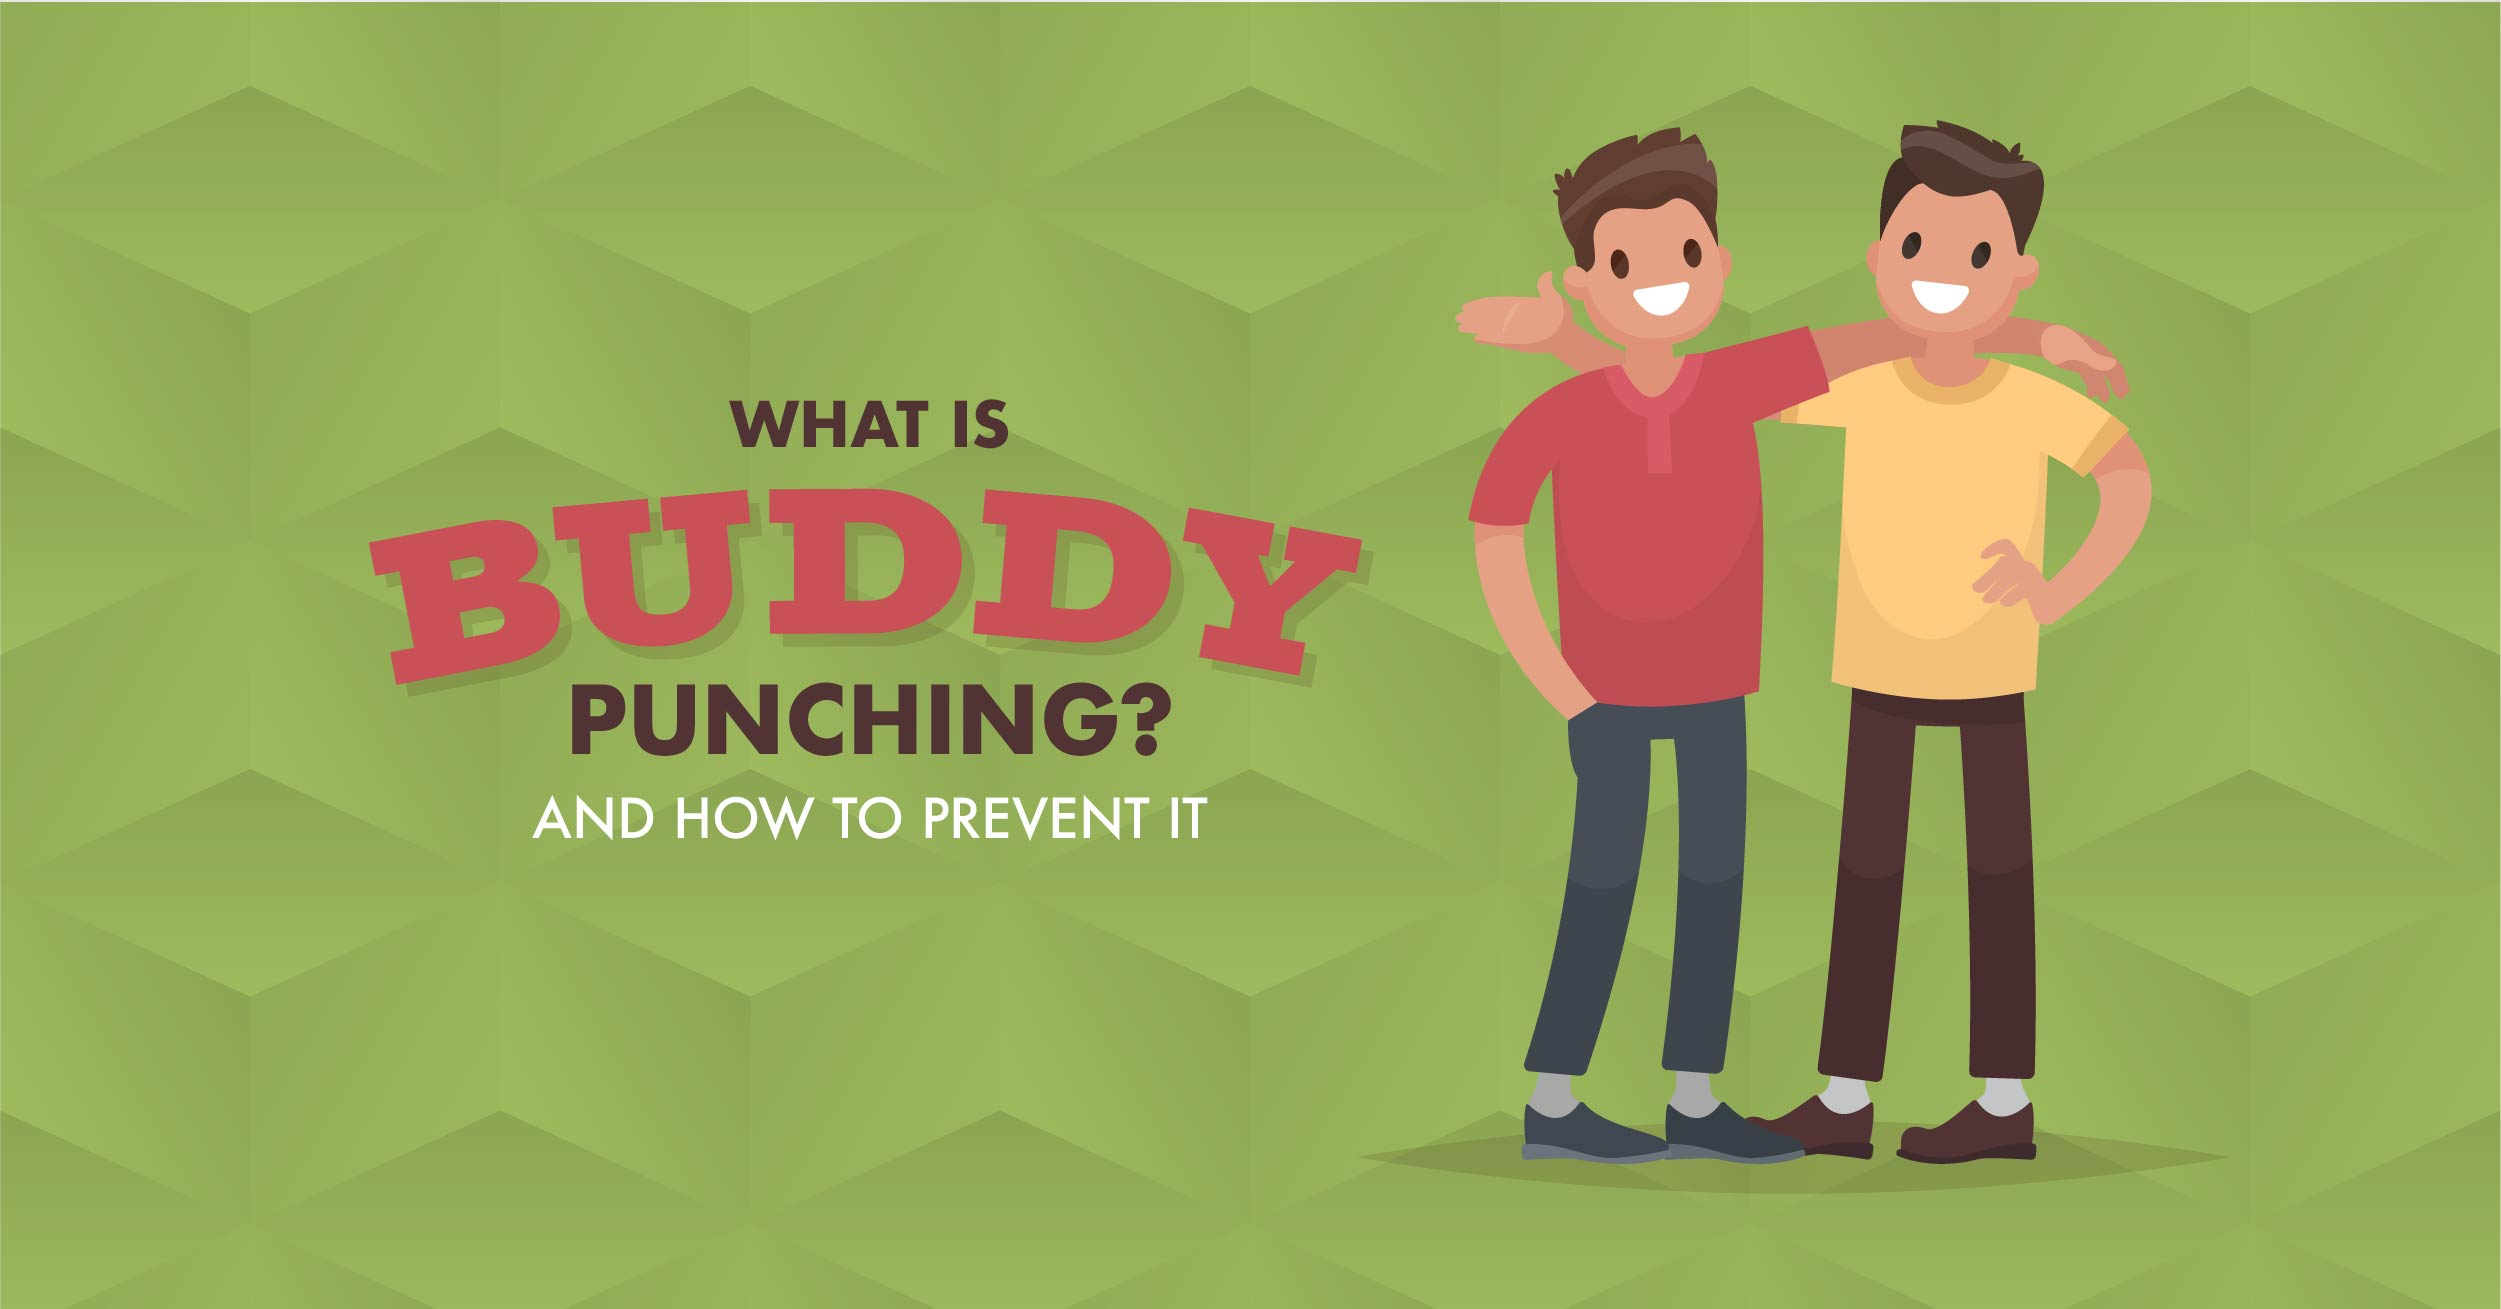 What is Buddy Punching? (And How to Prevent It) - When I Work